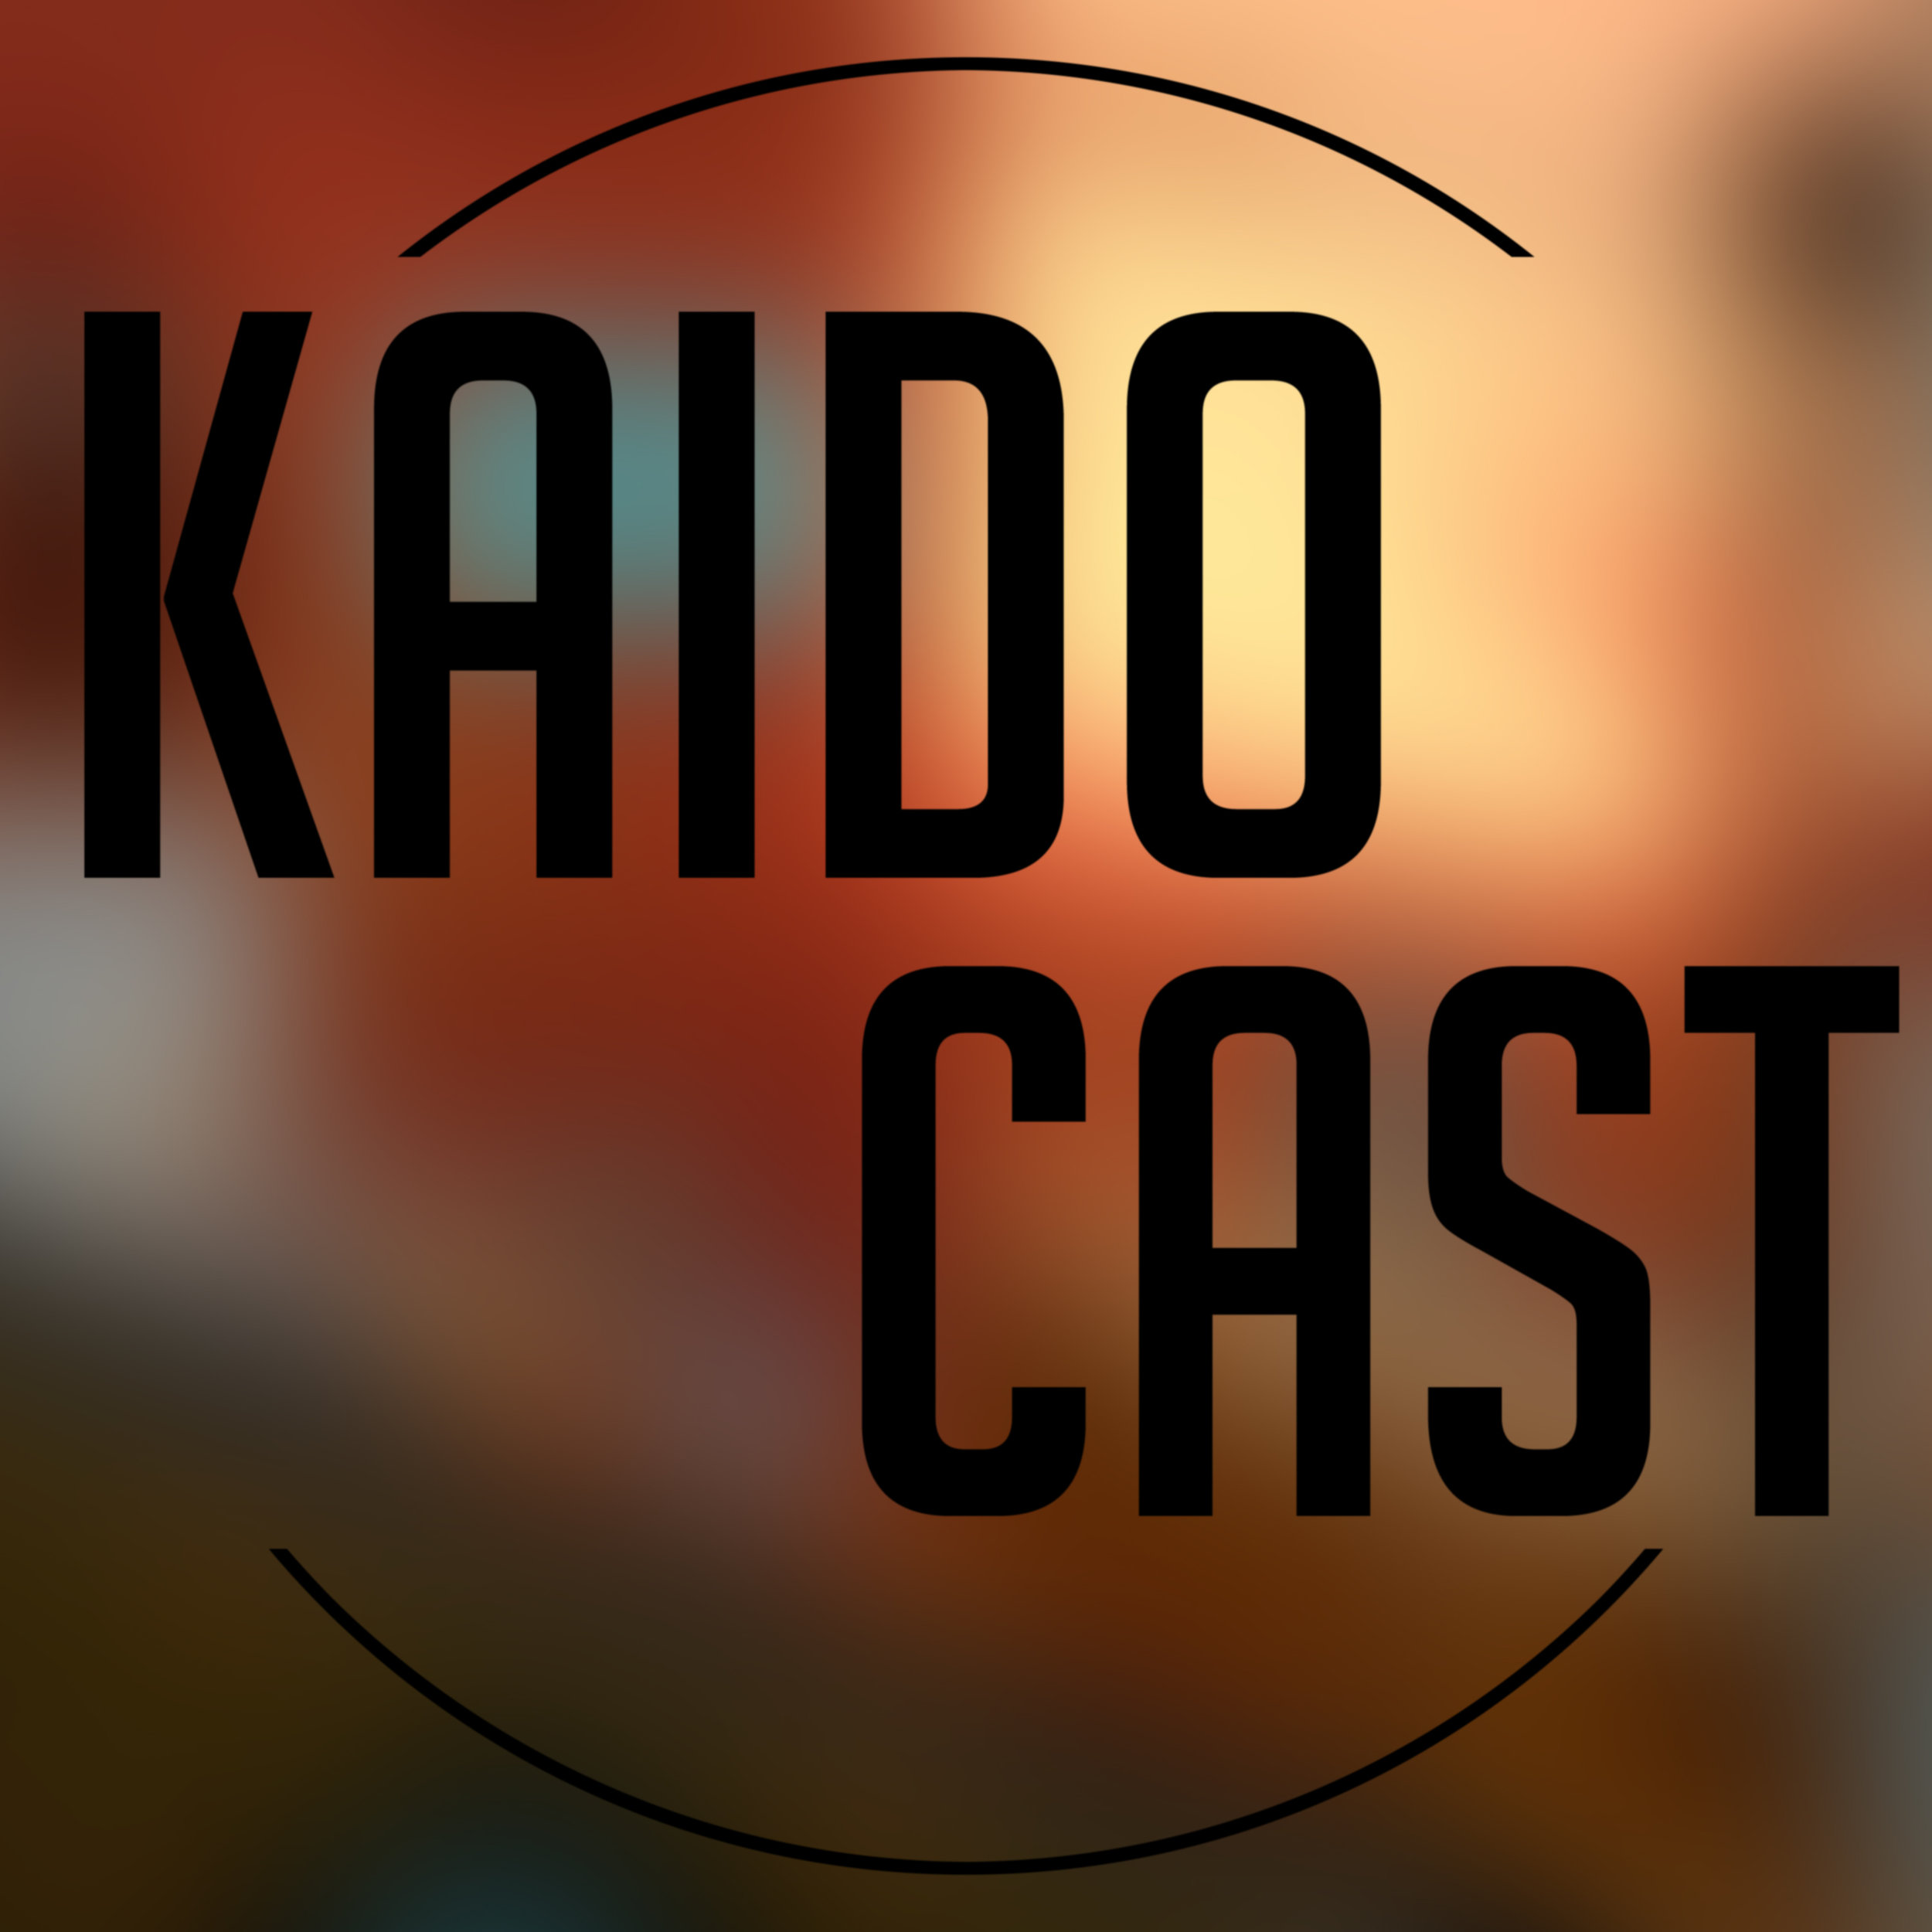 KAIDO Cast 06 - Murk in the Woods - Luke is back, along with our ability to keep things on the rails. Luke brings tales of fantasy, Andy grows up, and Zac just needs to relax.